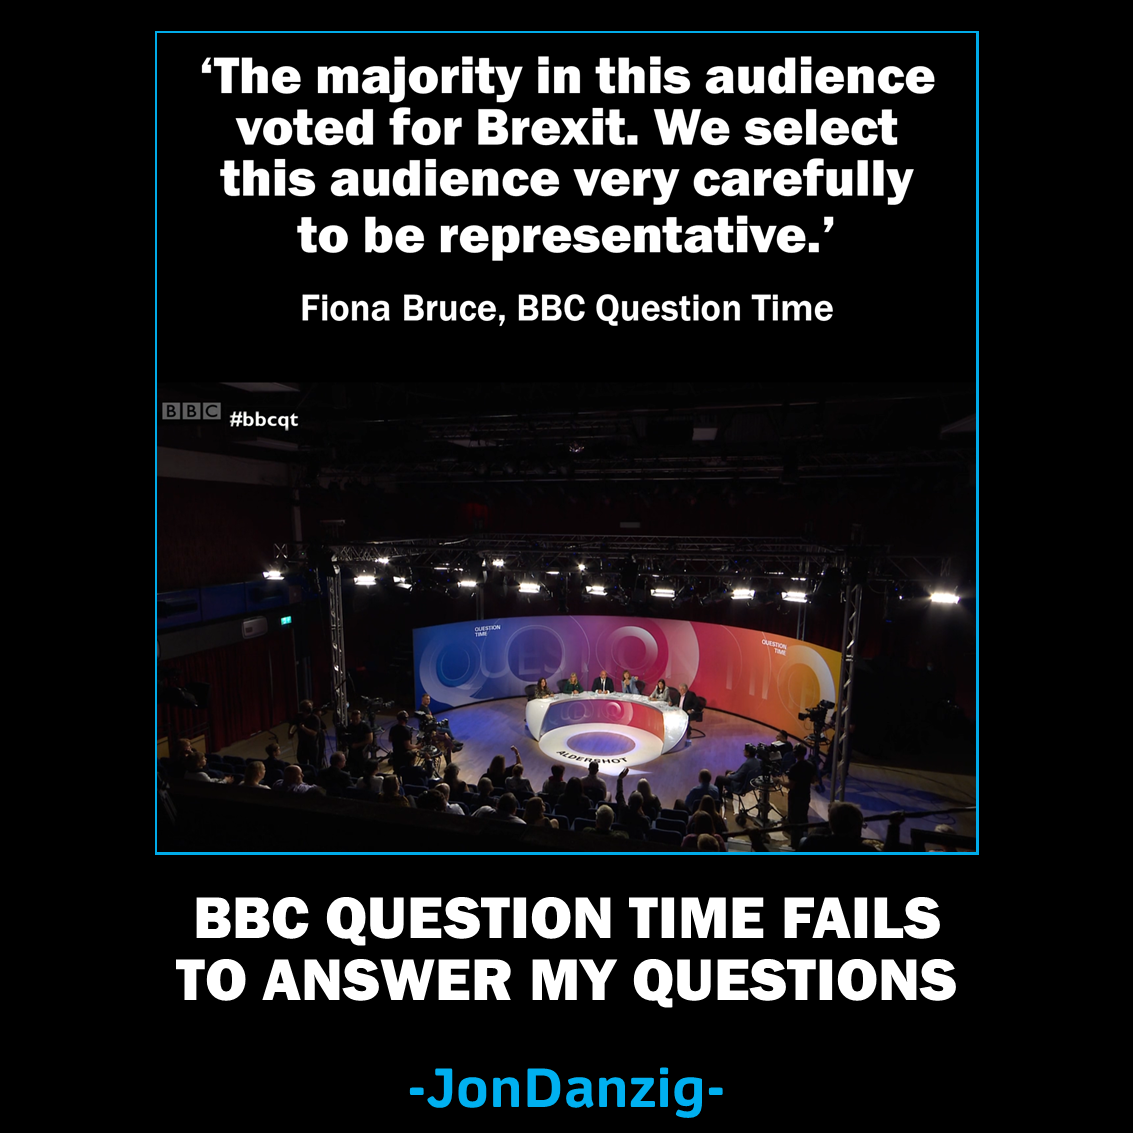 BBC Question Time fails to answer my questions